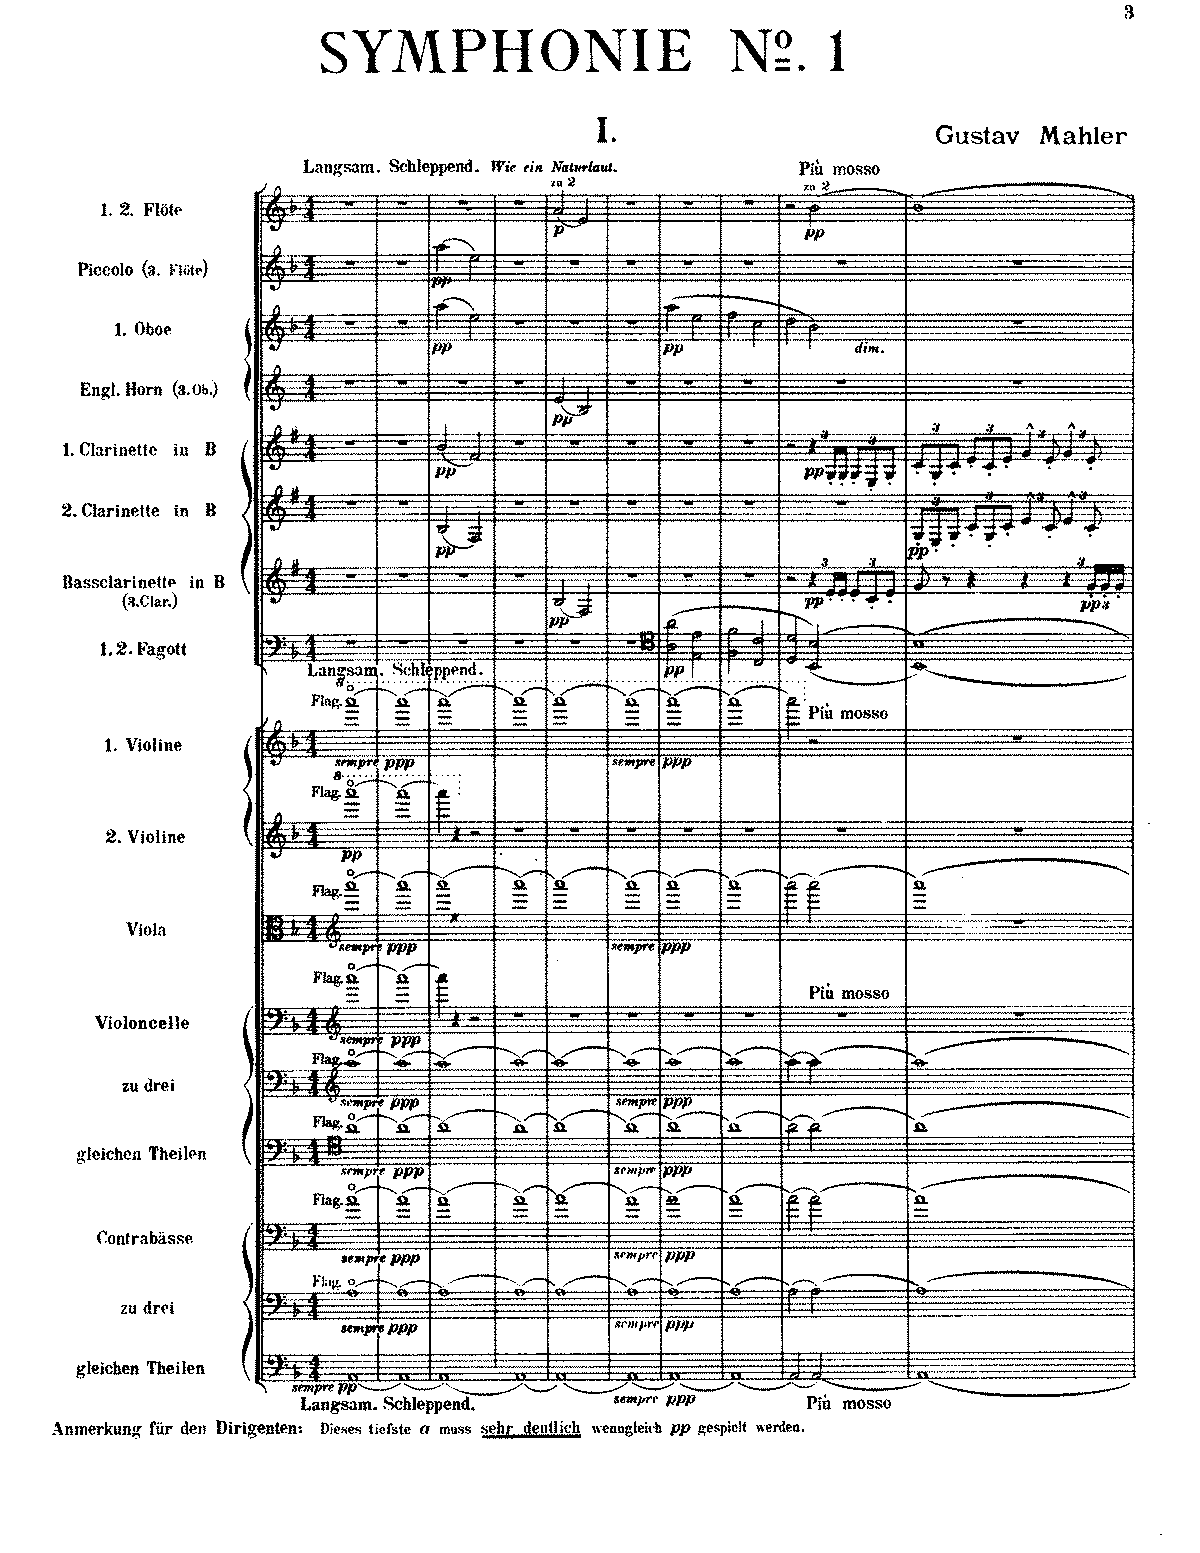 mahler symphony 2 movement v essay